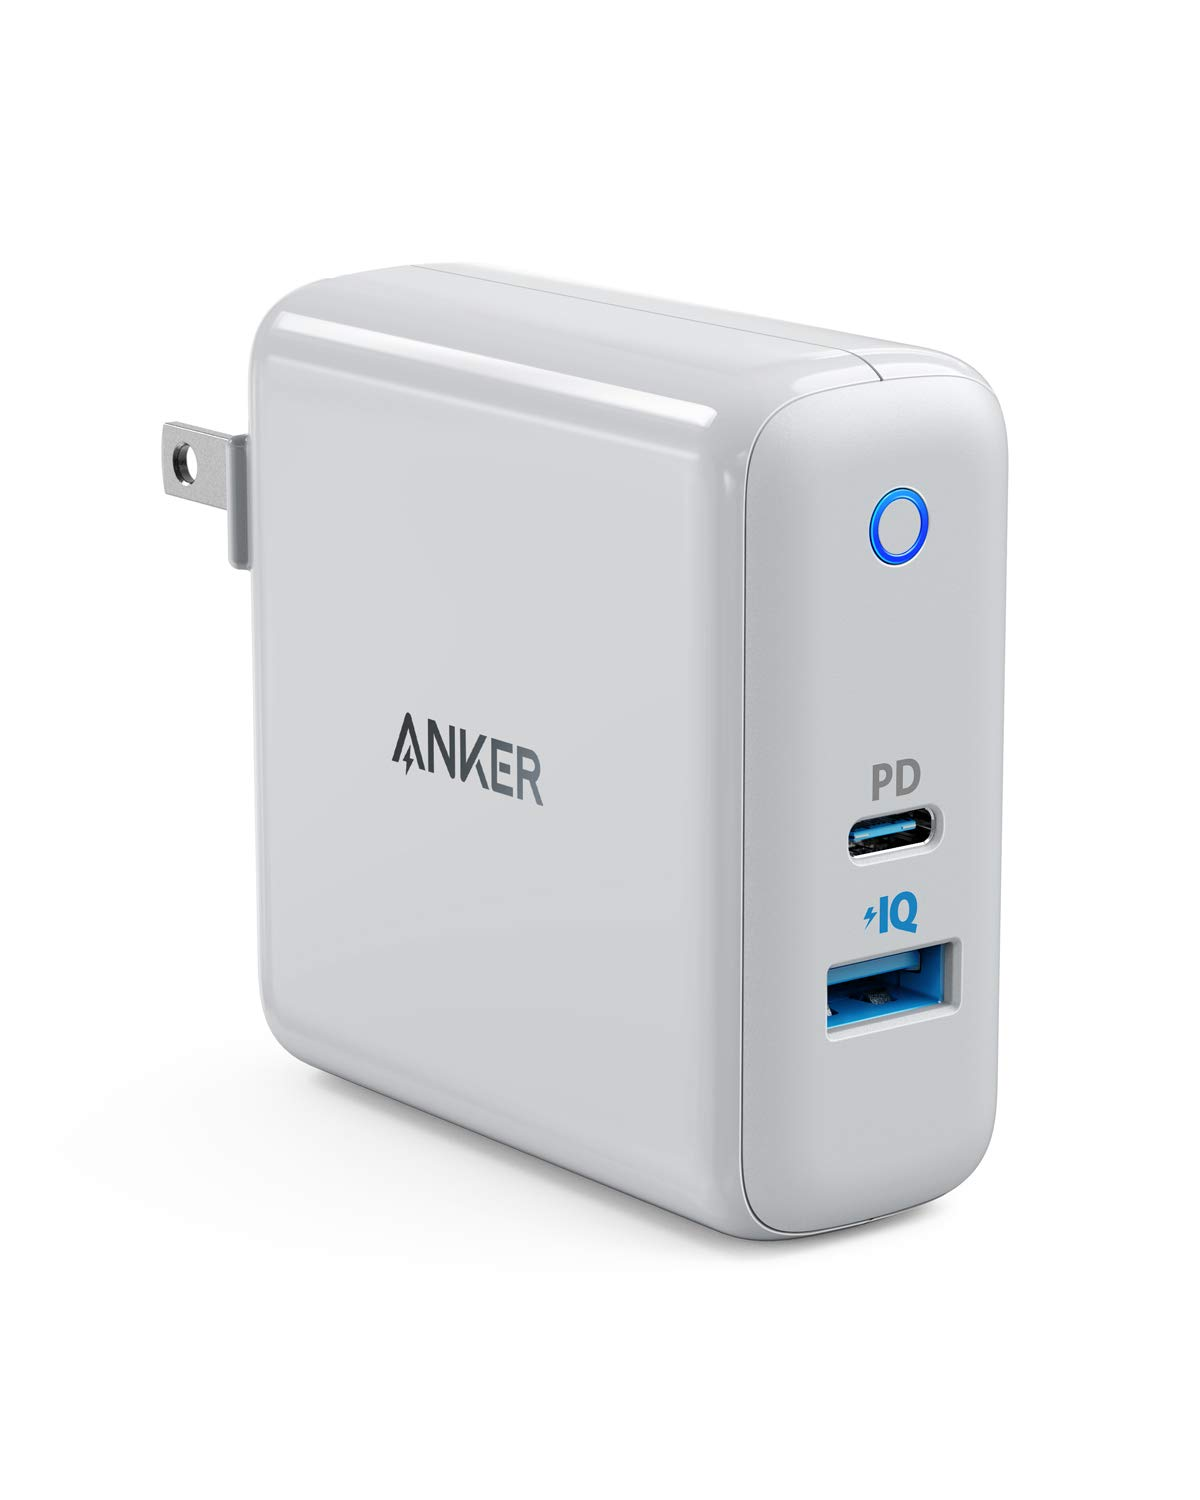 Anker USB C Charger, PowerPort Speed+ Duo Wall Charger with 30W Power Delivery Port for iPhone Xs/Max/XR/X/8, iPad Air 2/Mini, MacBook Pro/Air 2018, Galaxy S9/S8, LG, Nexus, Pixel, and More AK-A26221D1